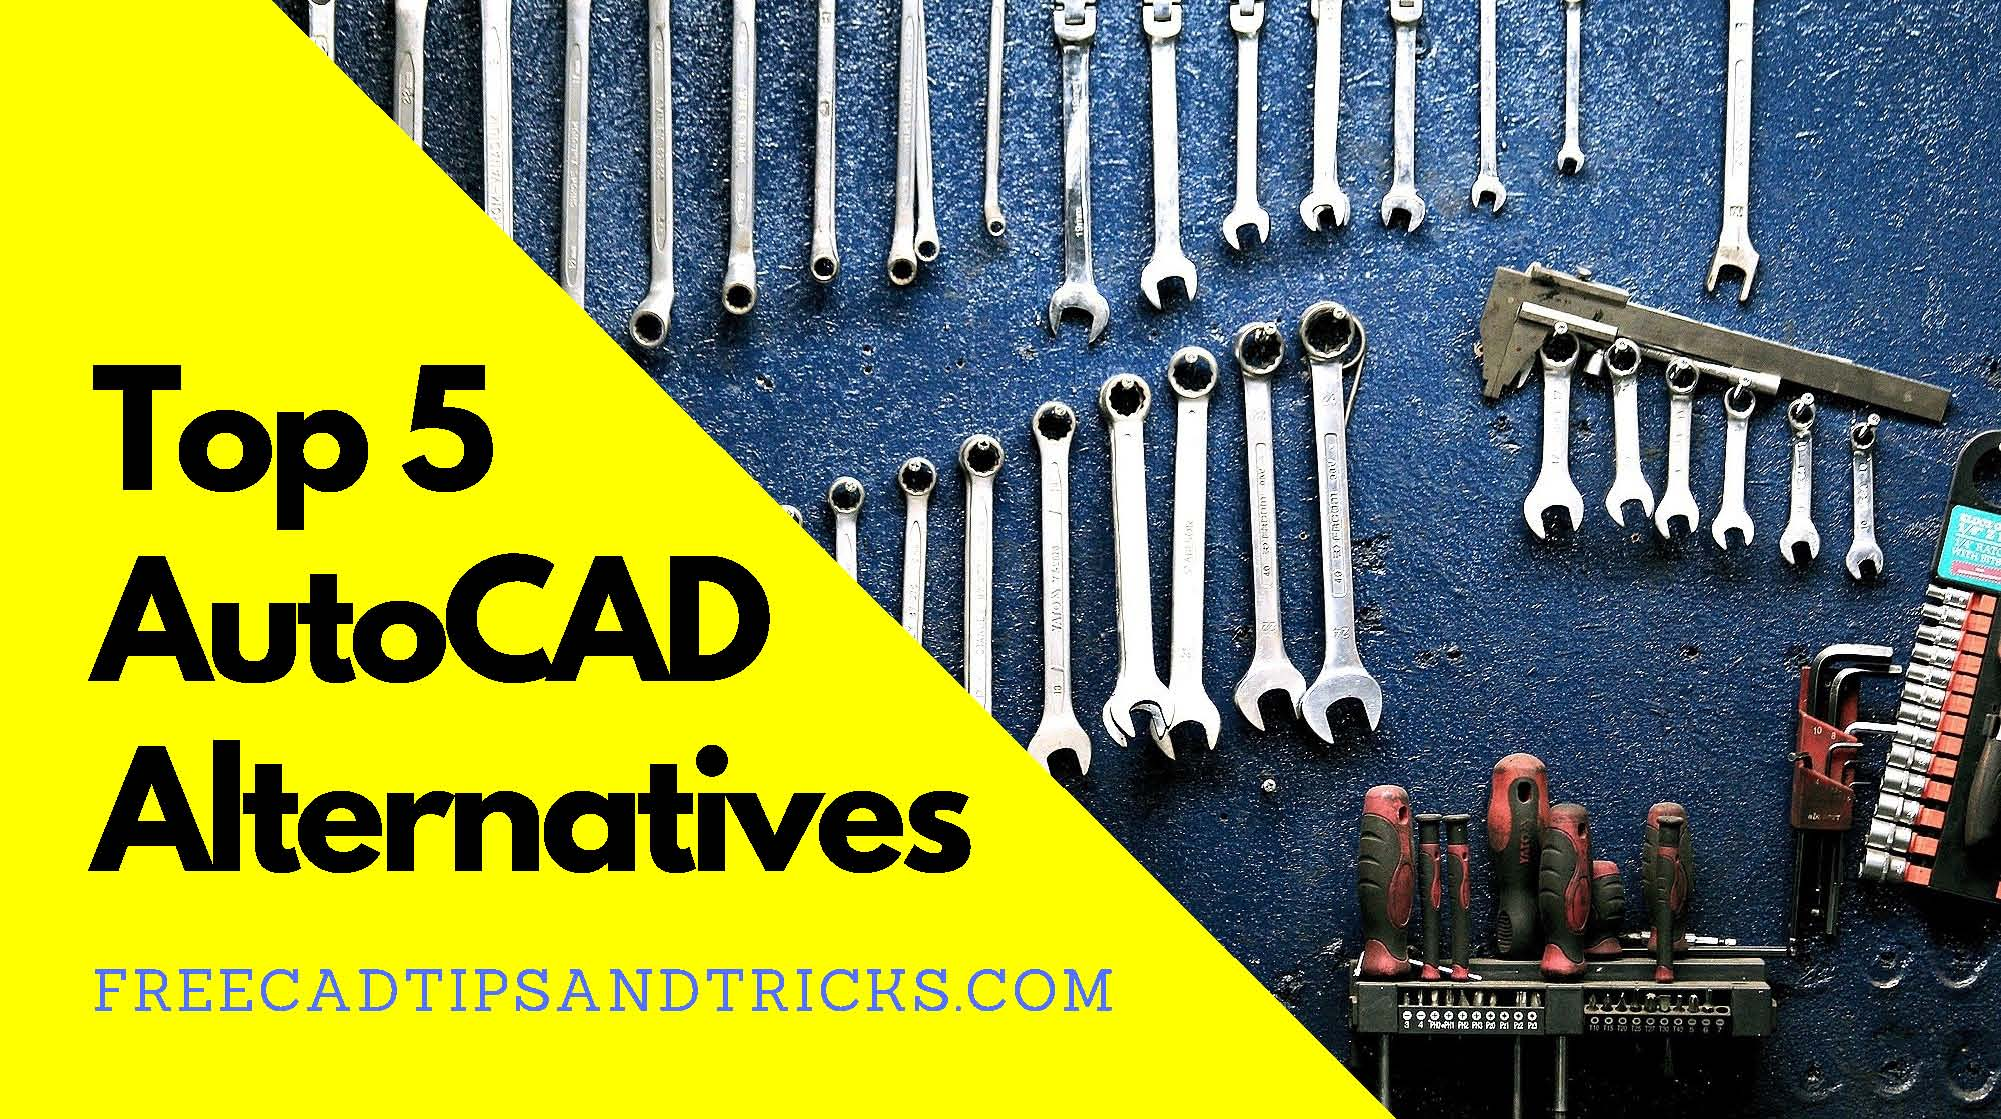 AutoCAD: Top 5 Affordable AutoCAD Alternatives - Free CAD Tips And